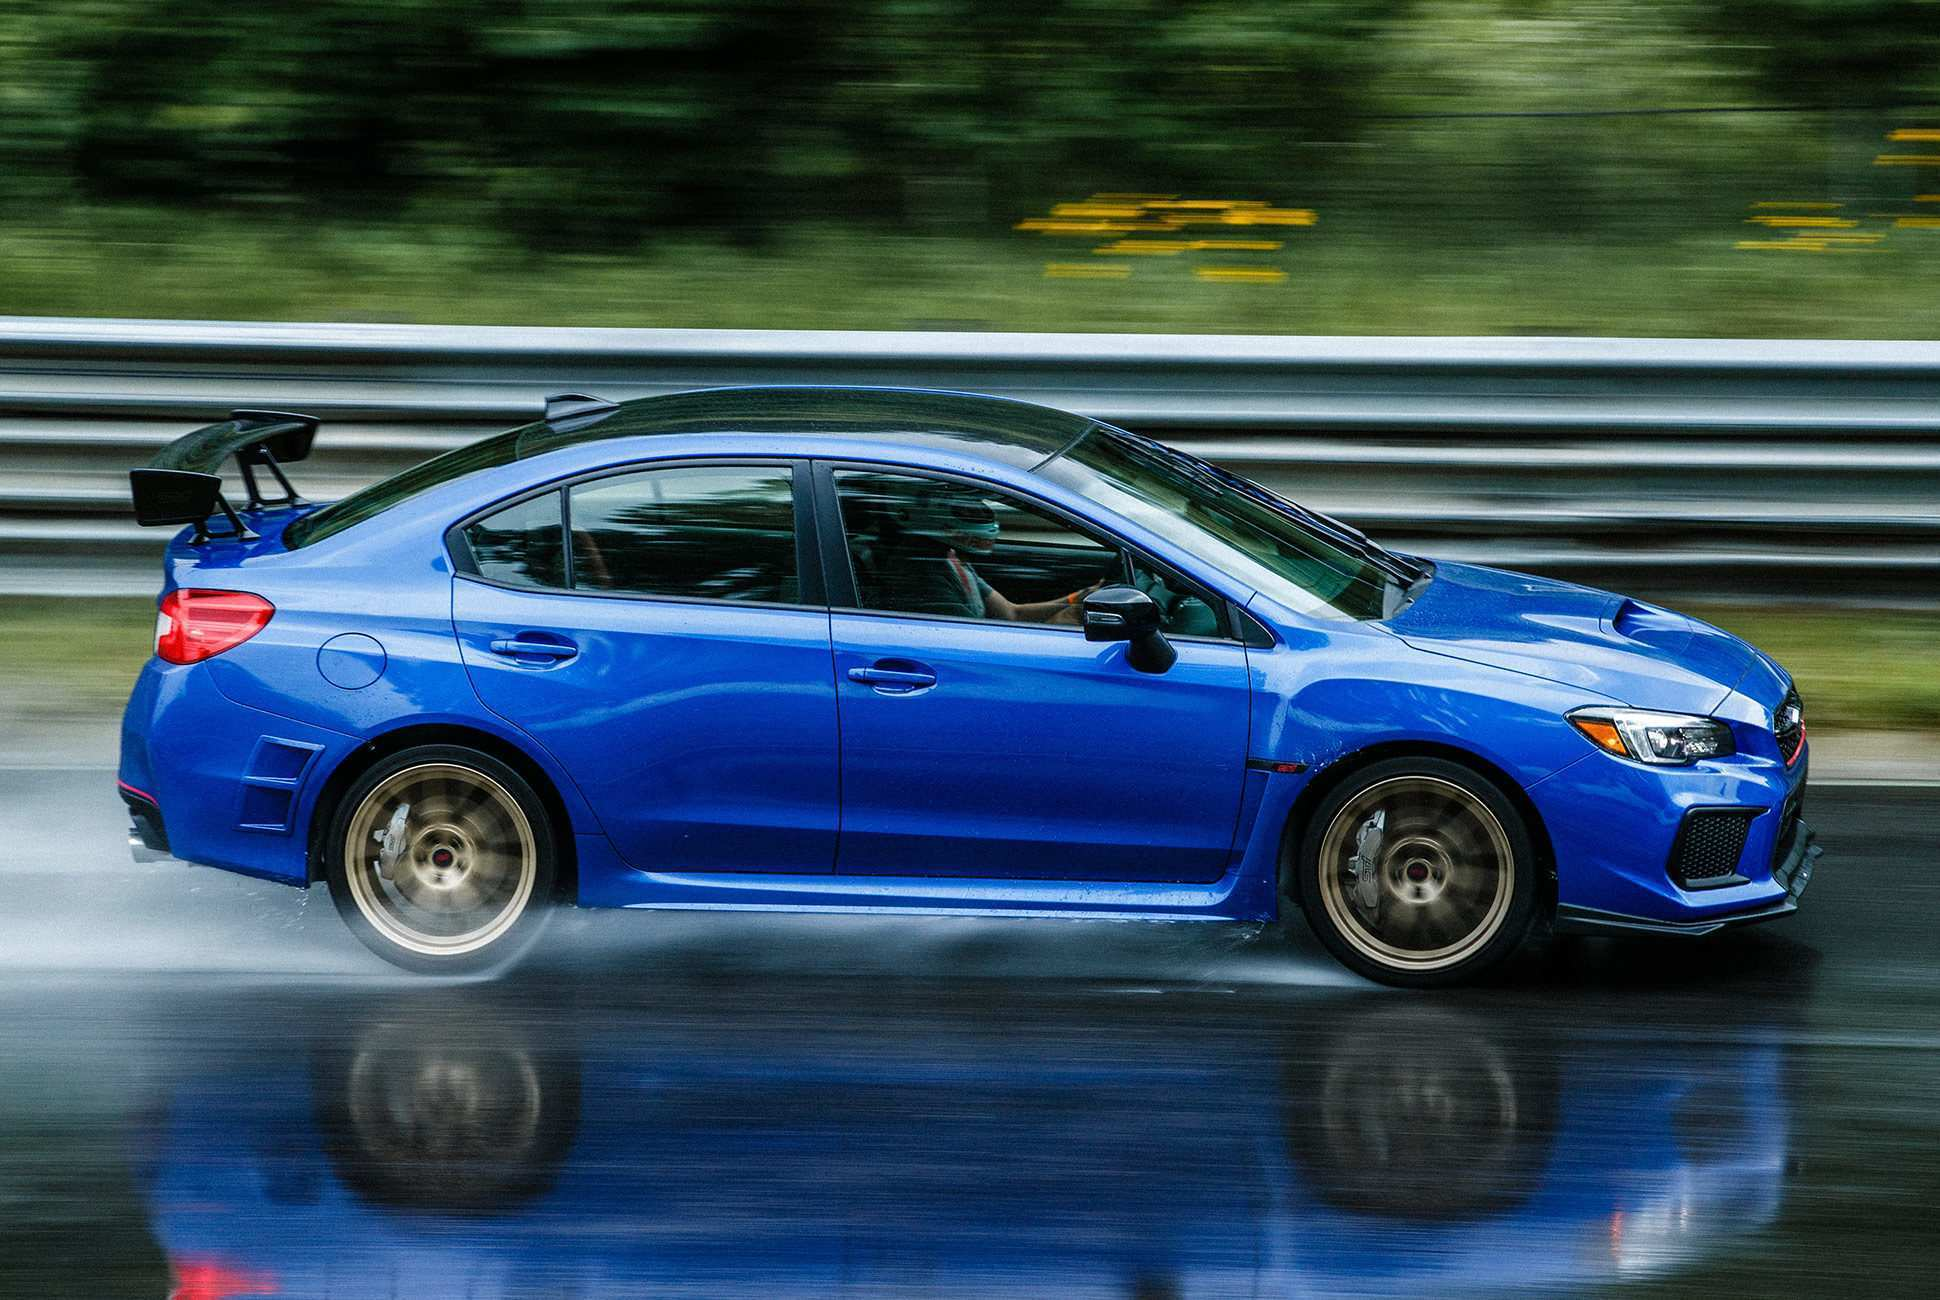 61 The Best Subaru Impreza Sti 2019 Spy Shoot